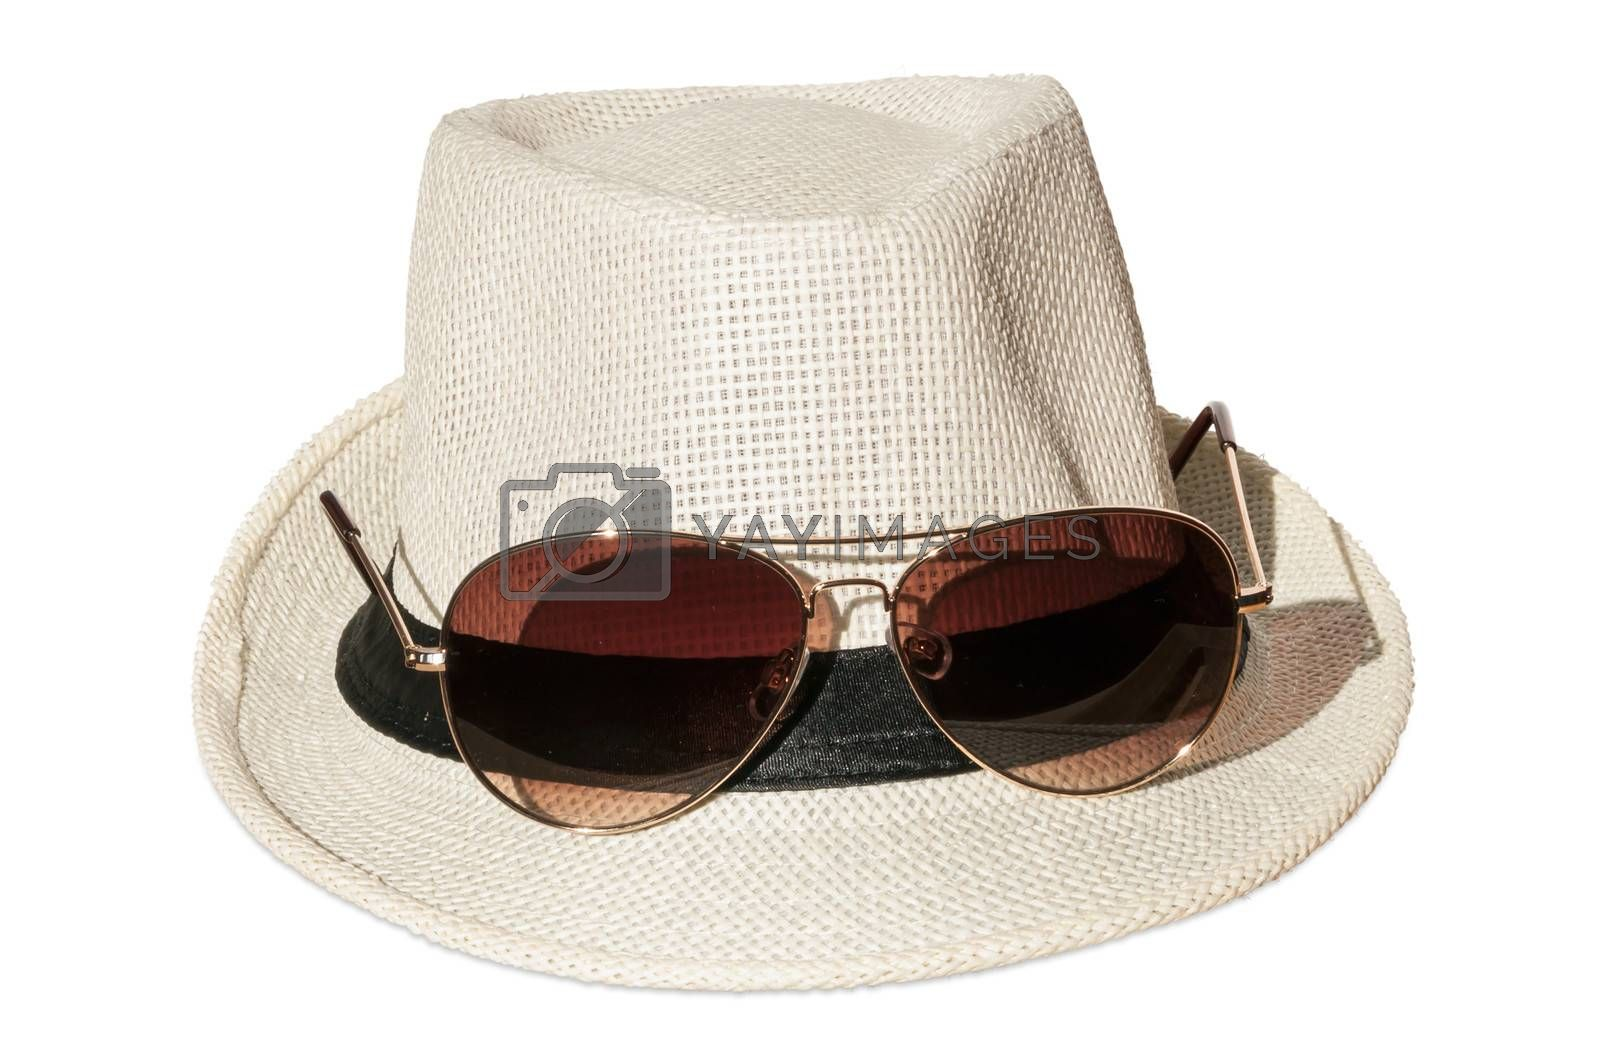 White hat with sunglasses isolated over white background.